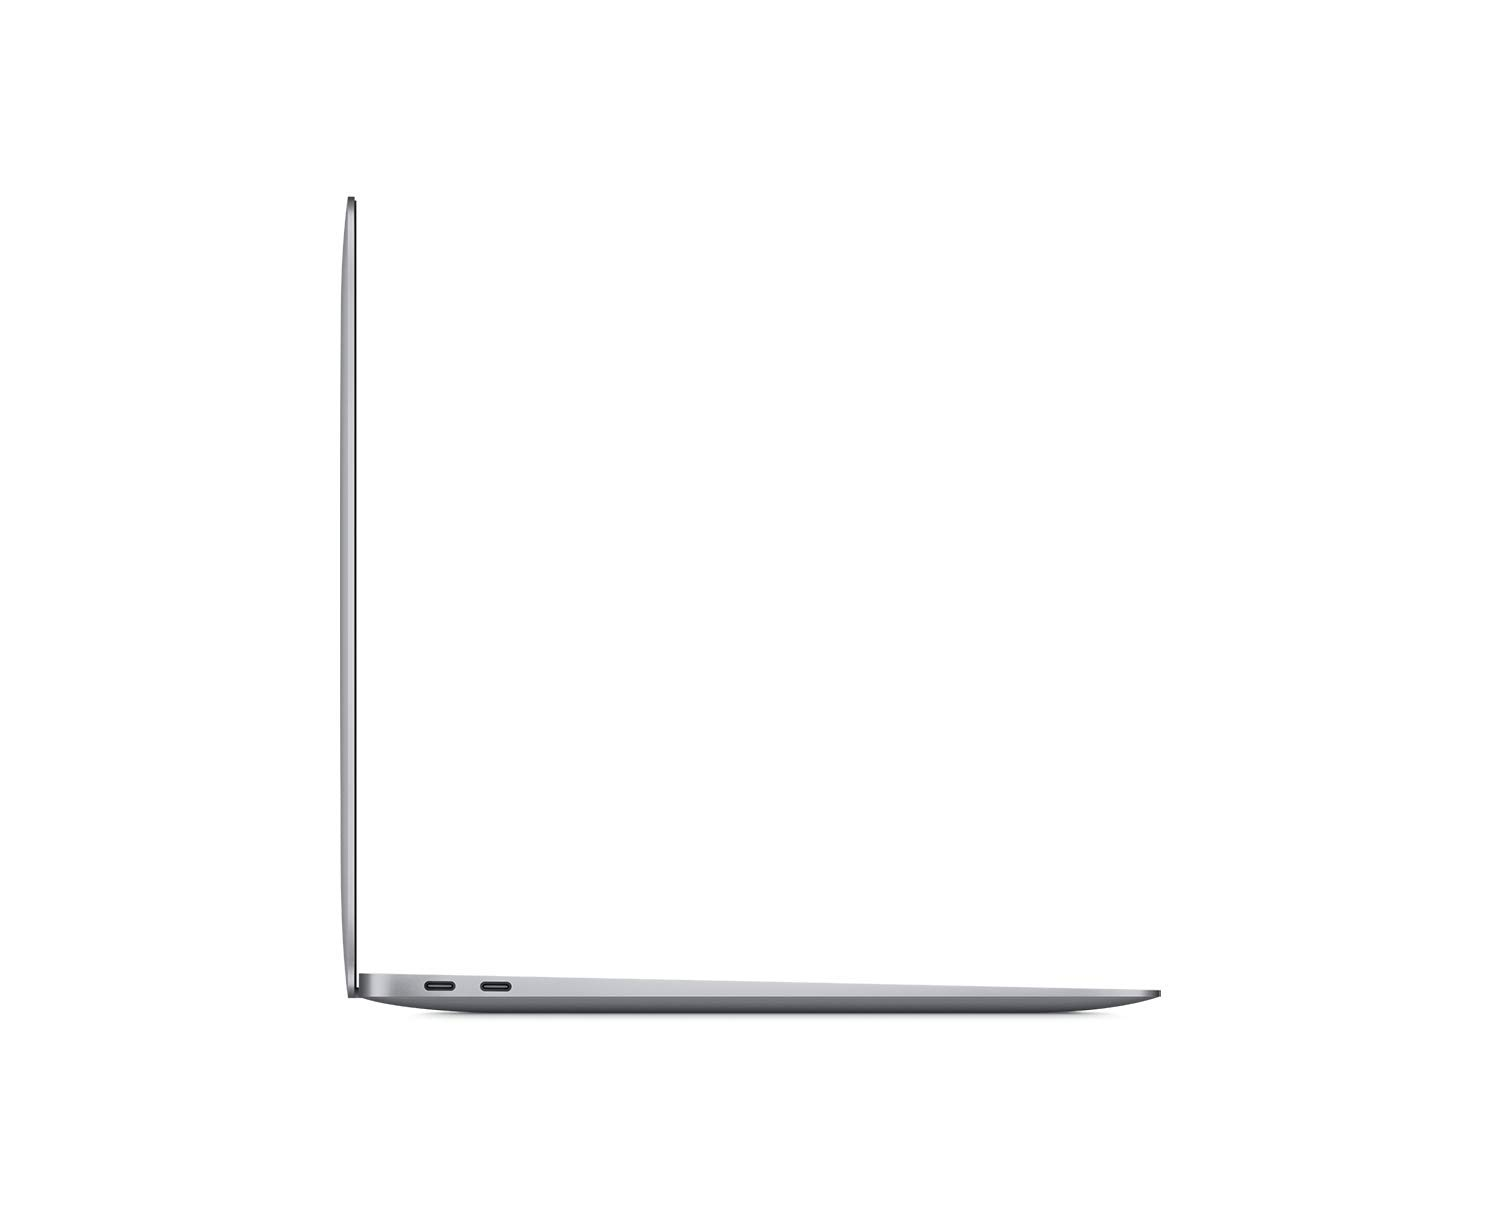 Apple MacBook Air (13-inch Retina display, 1.6GHz dual-core Intel Core i5, 256GB) - Space Gray (Latest Model) by Apple (Image #5)